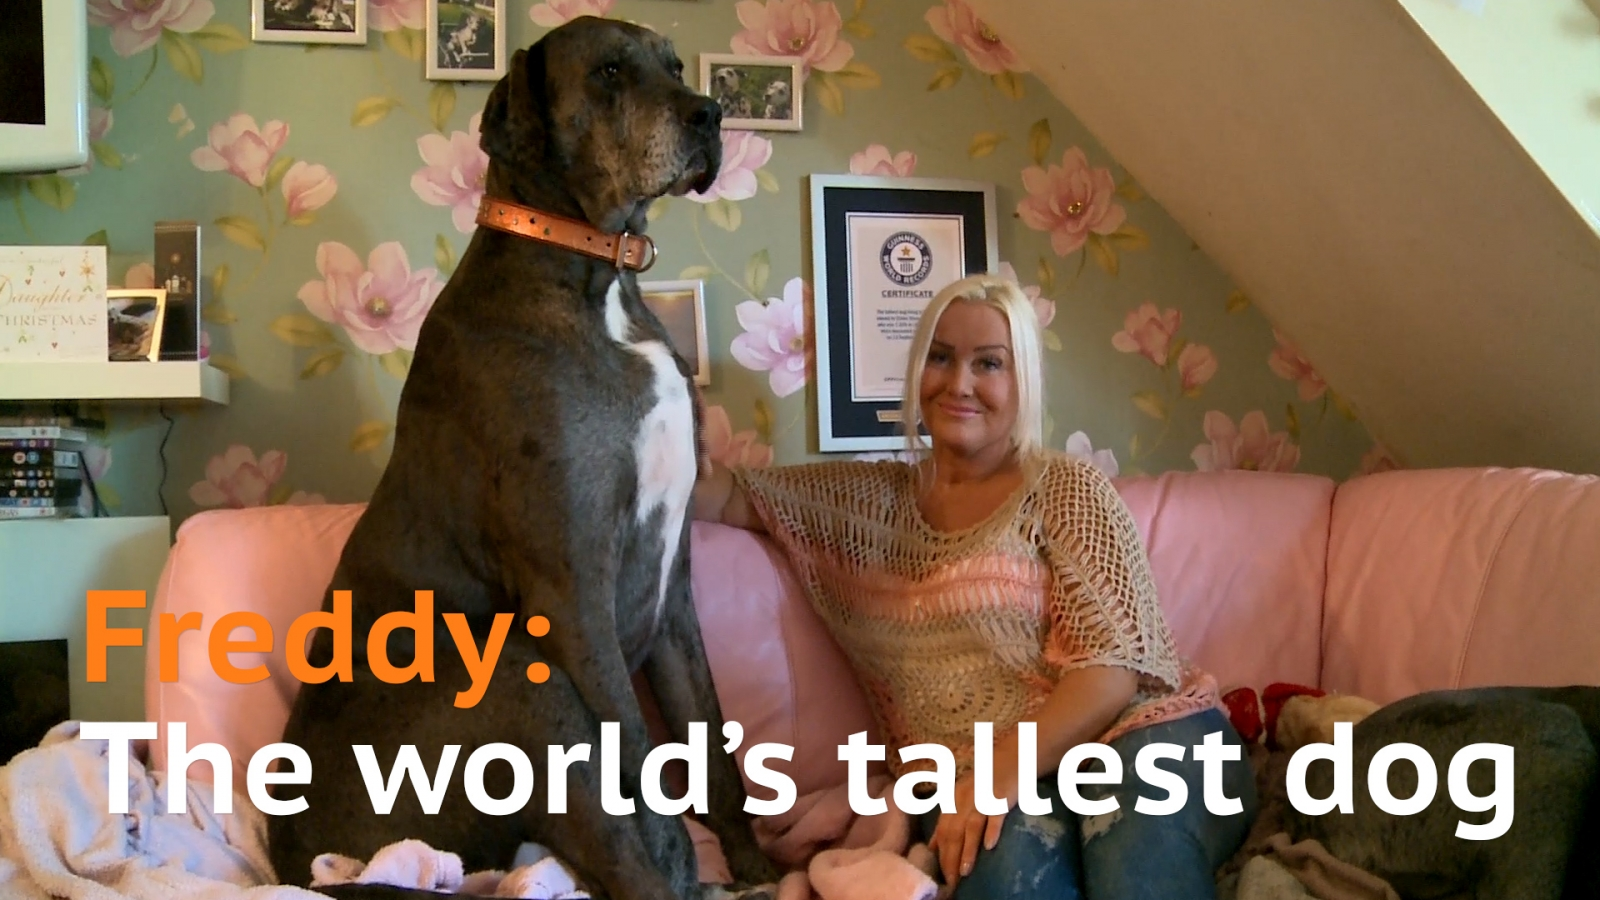 World's tallest dog Freddy